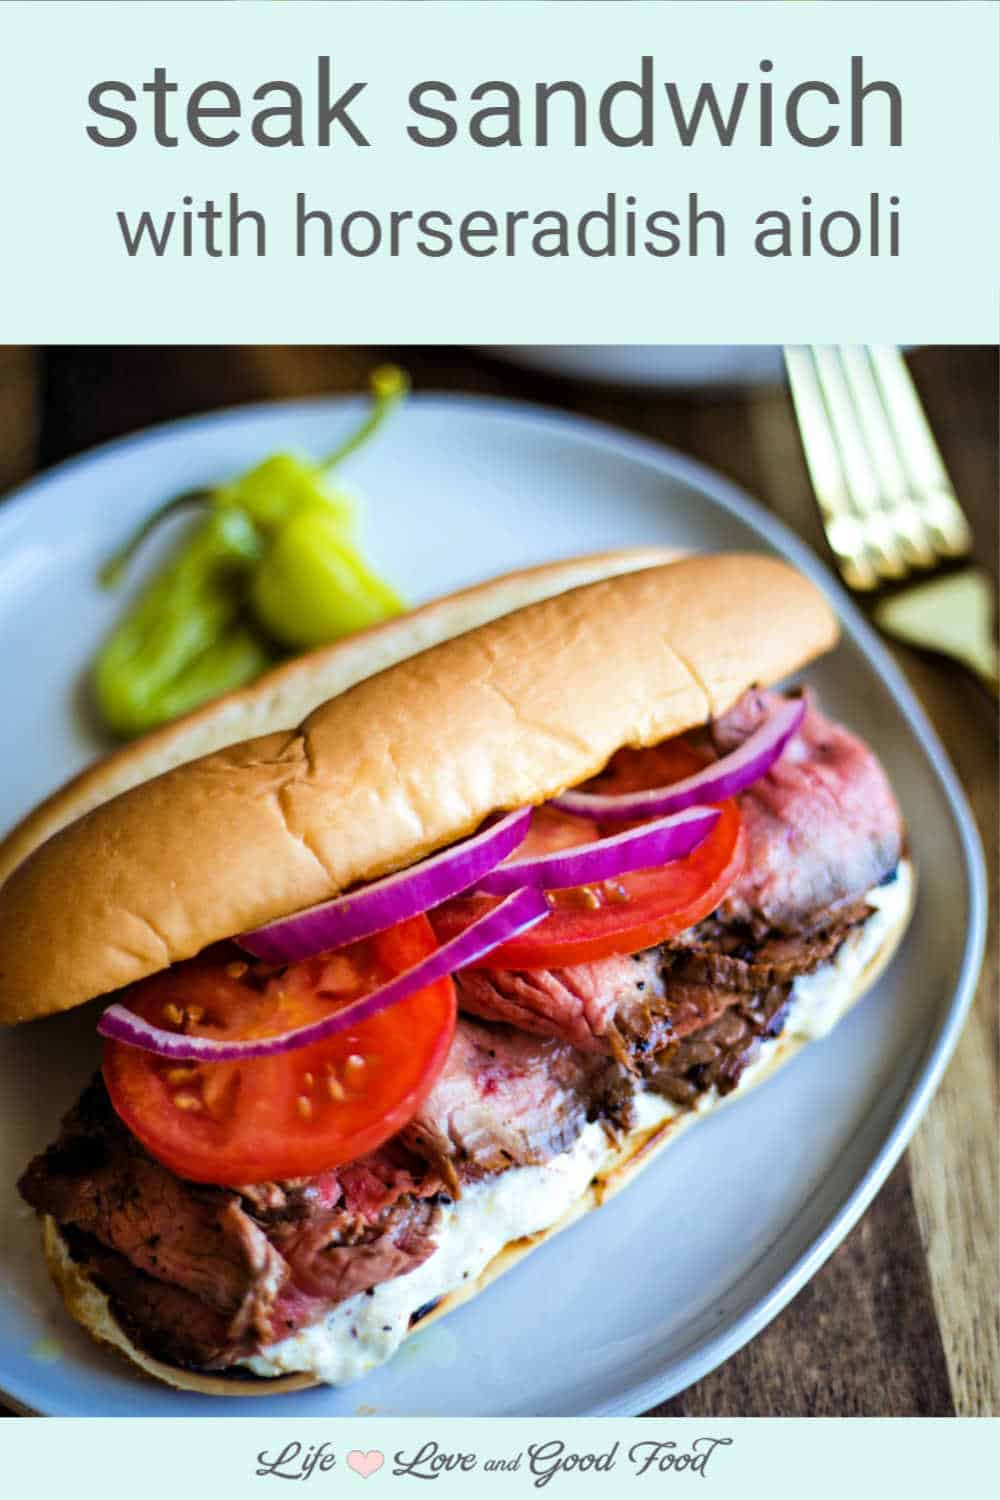 This mouth-watering steak sandwich recipe is piled high with tender grilled flank steak and dressed with horseradish aioli, sliced tomatoes, and red onions.